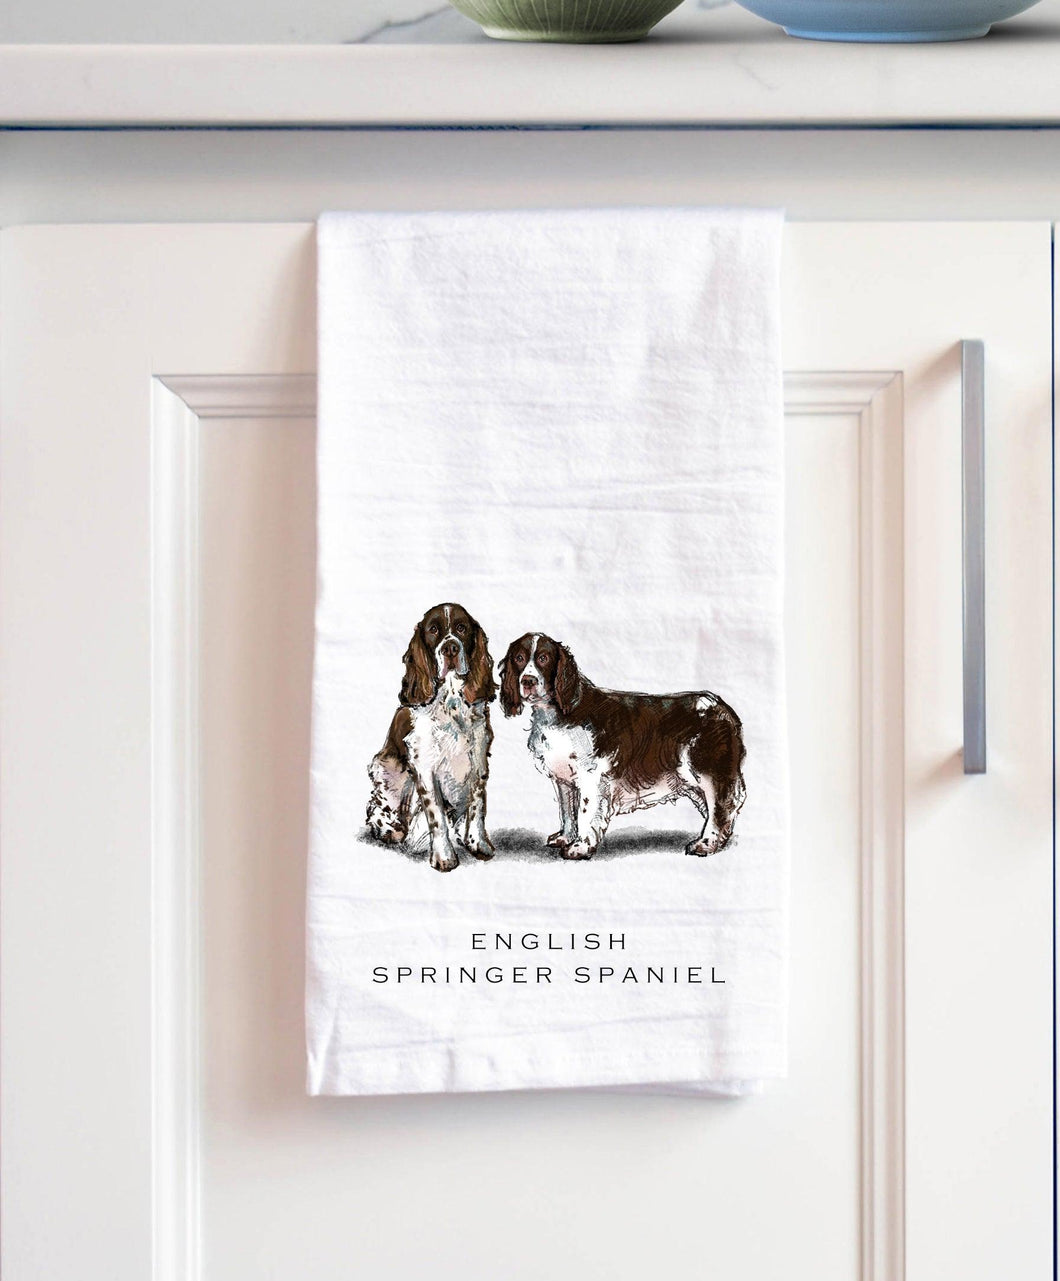 English springer spaniel white cotton kitchen towel